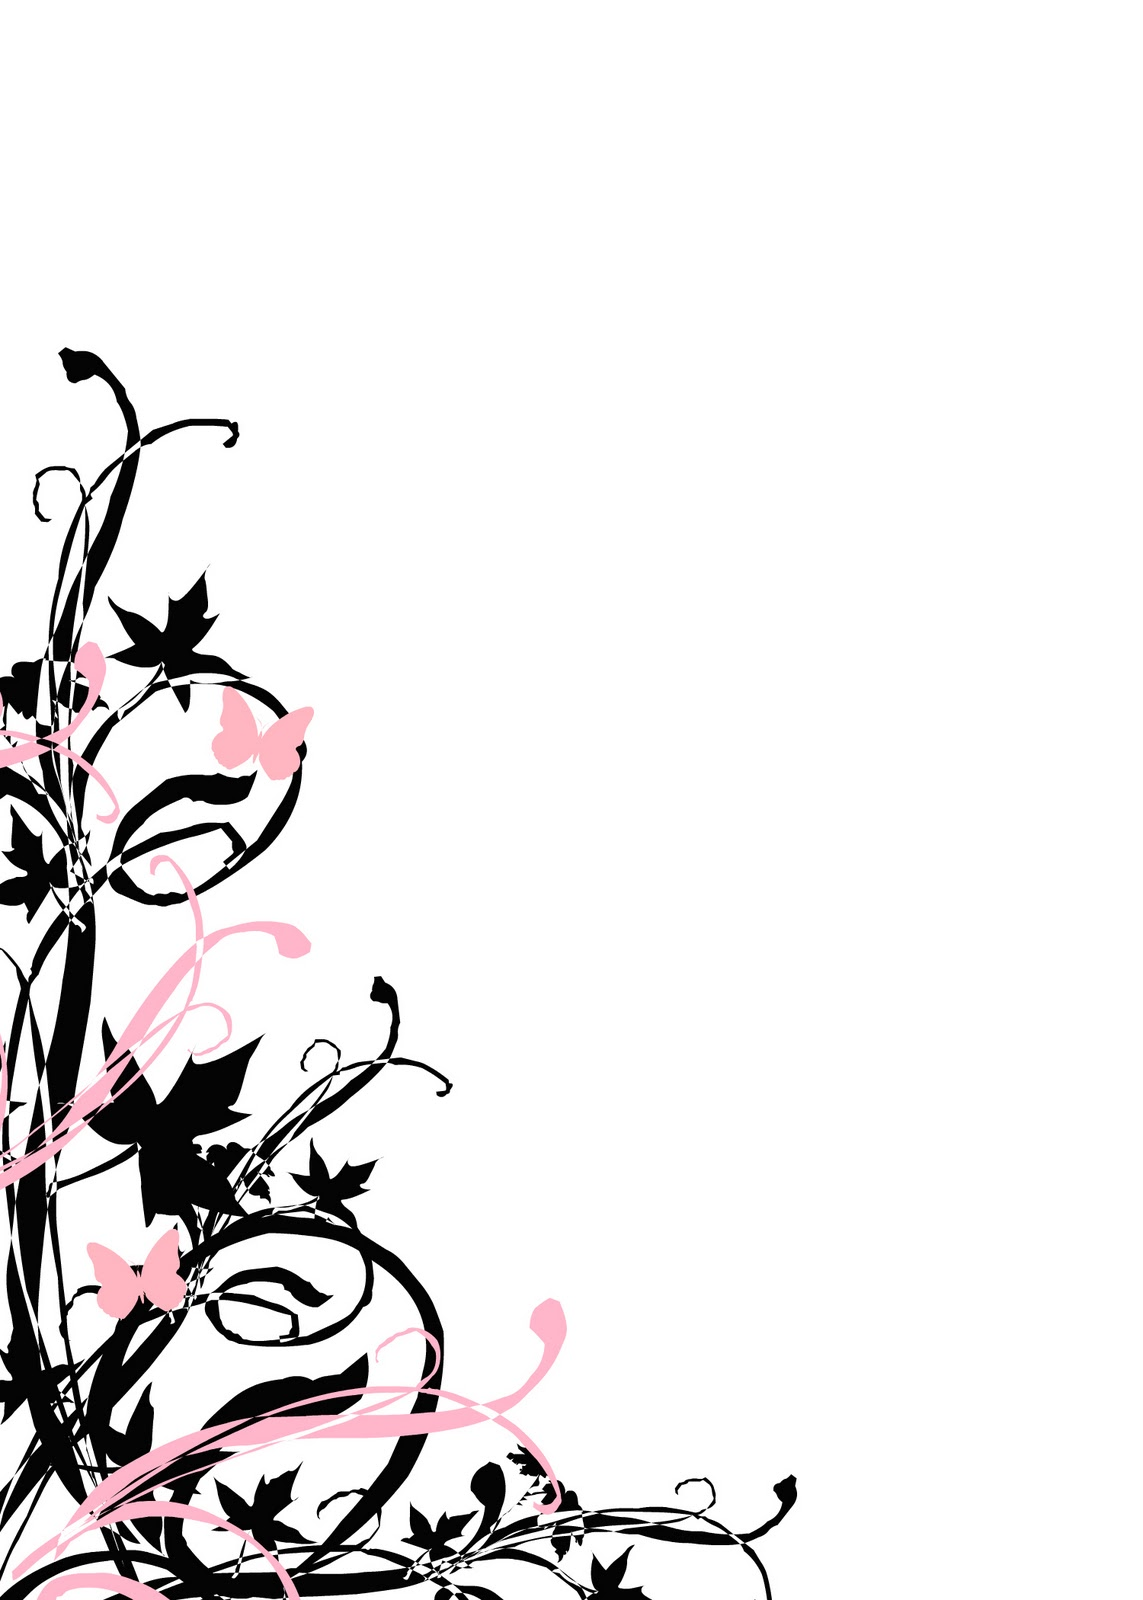 Wedding clipart is to affect the artistic bride wedding dress 2012